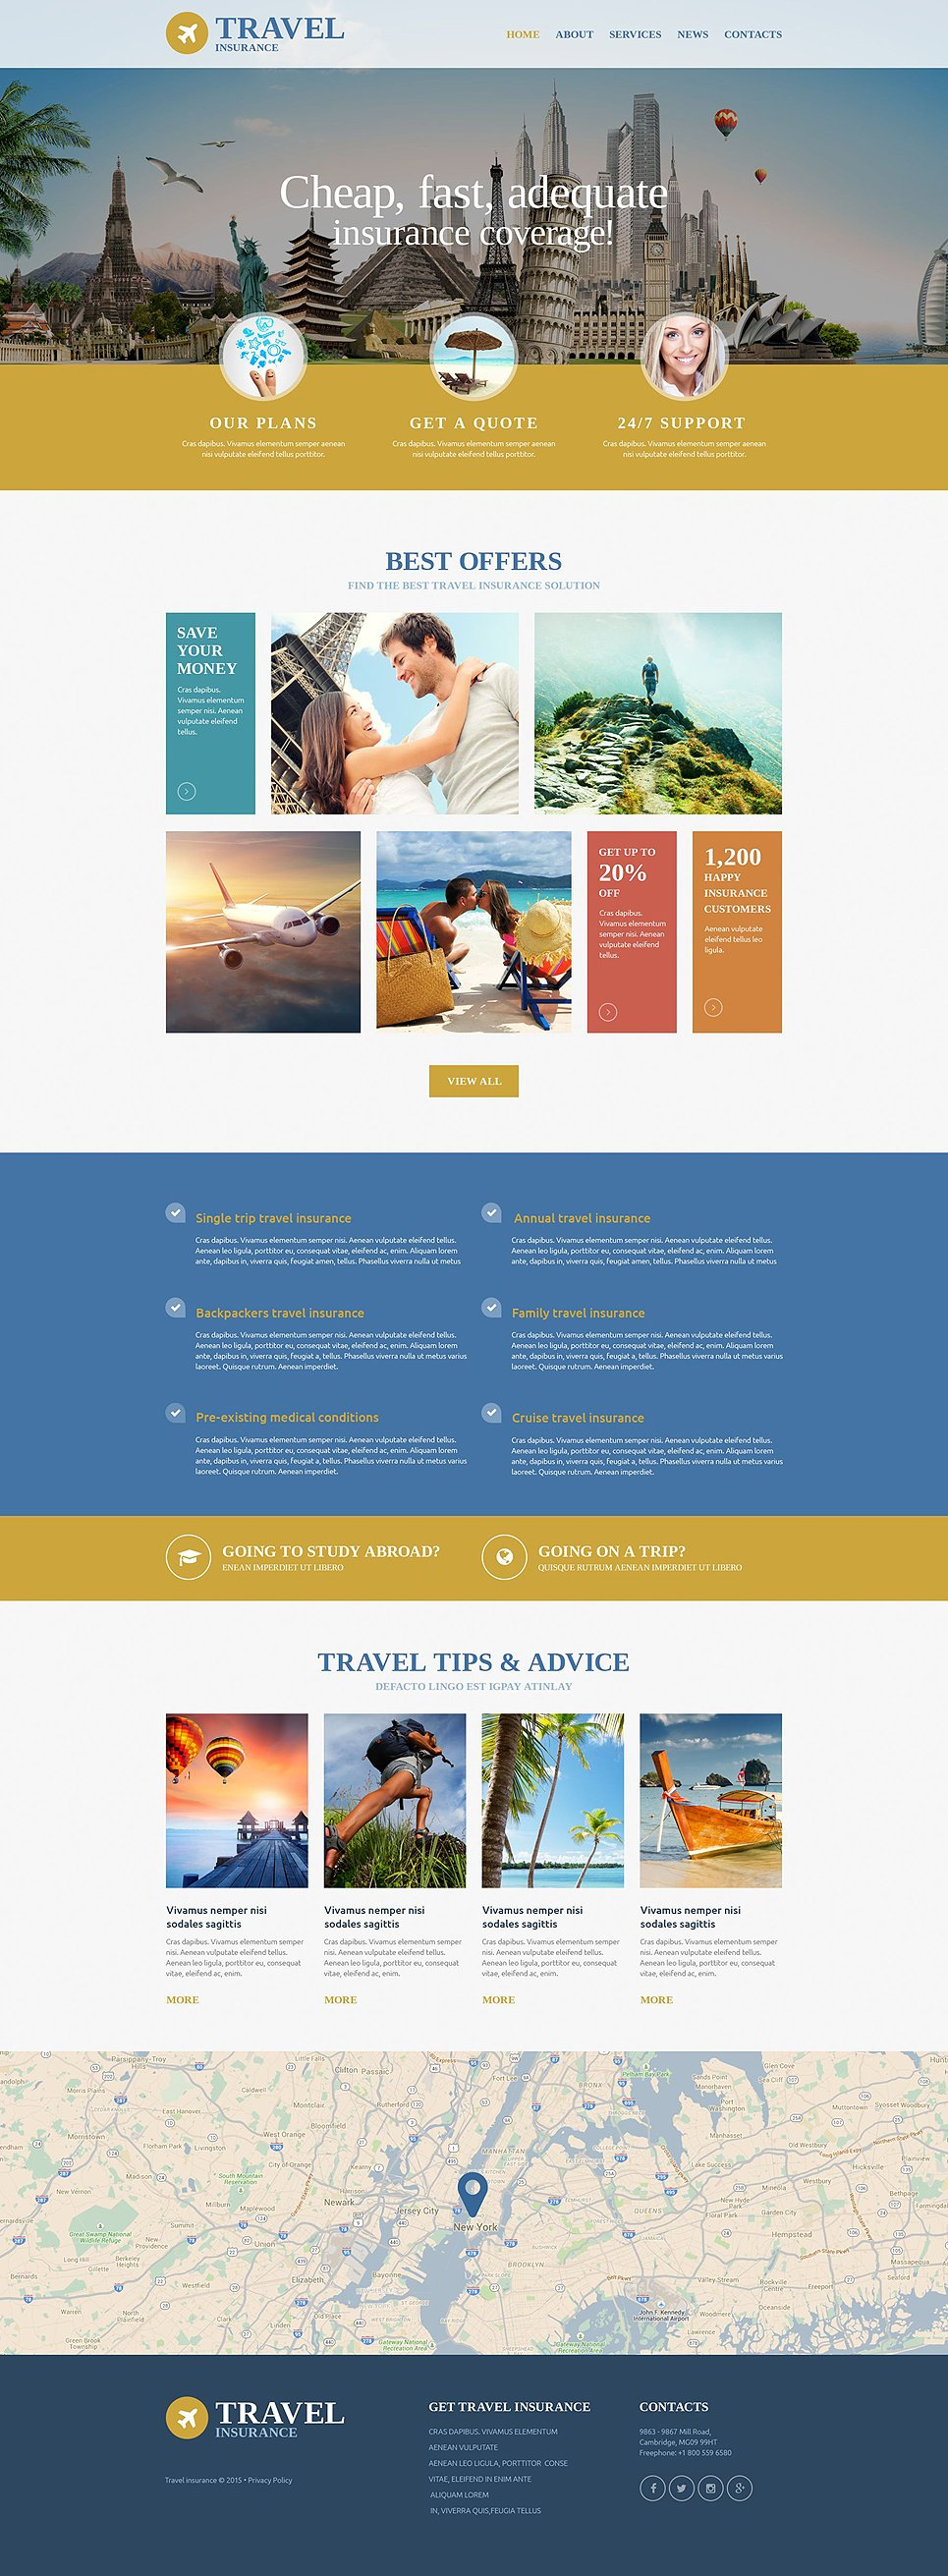 Travel Insurance Agency template illustration image